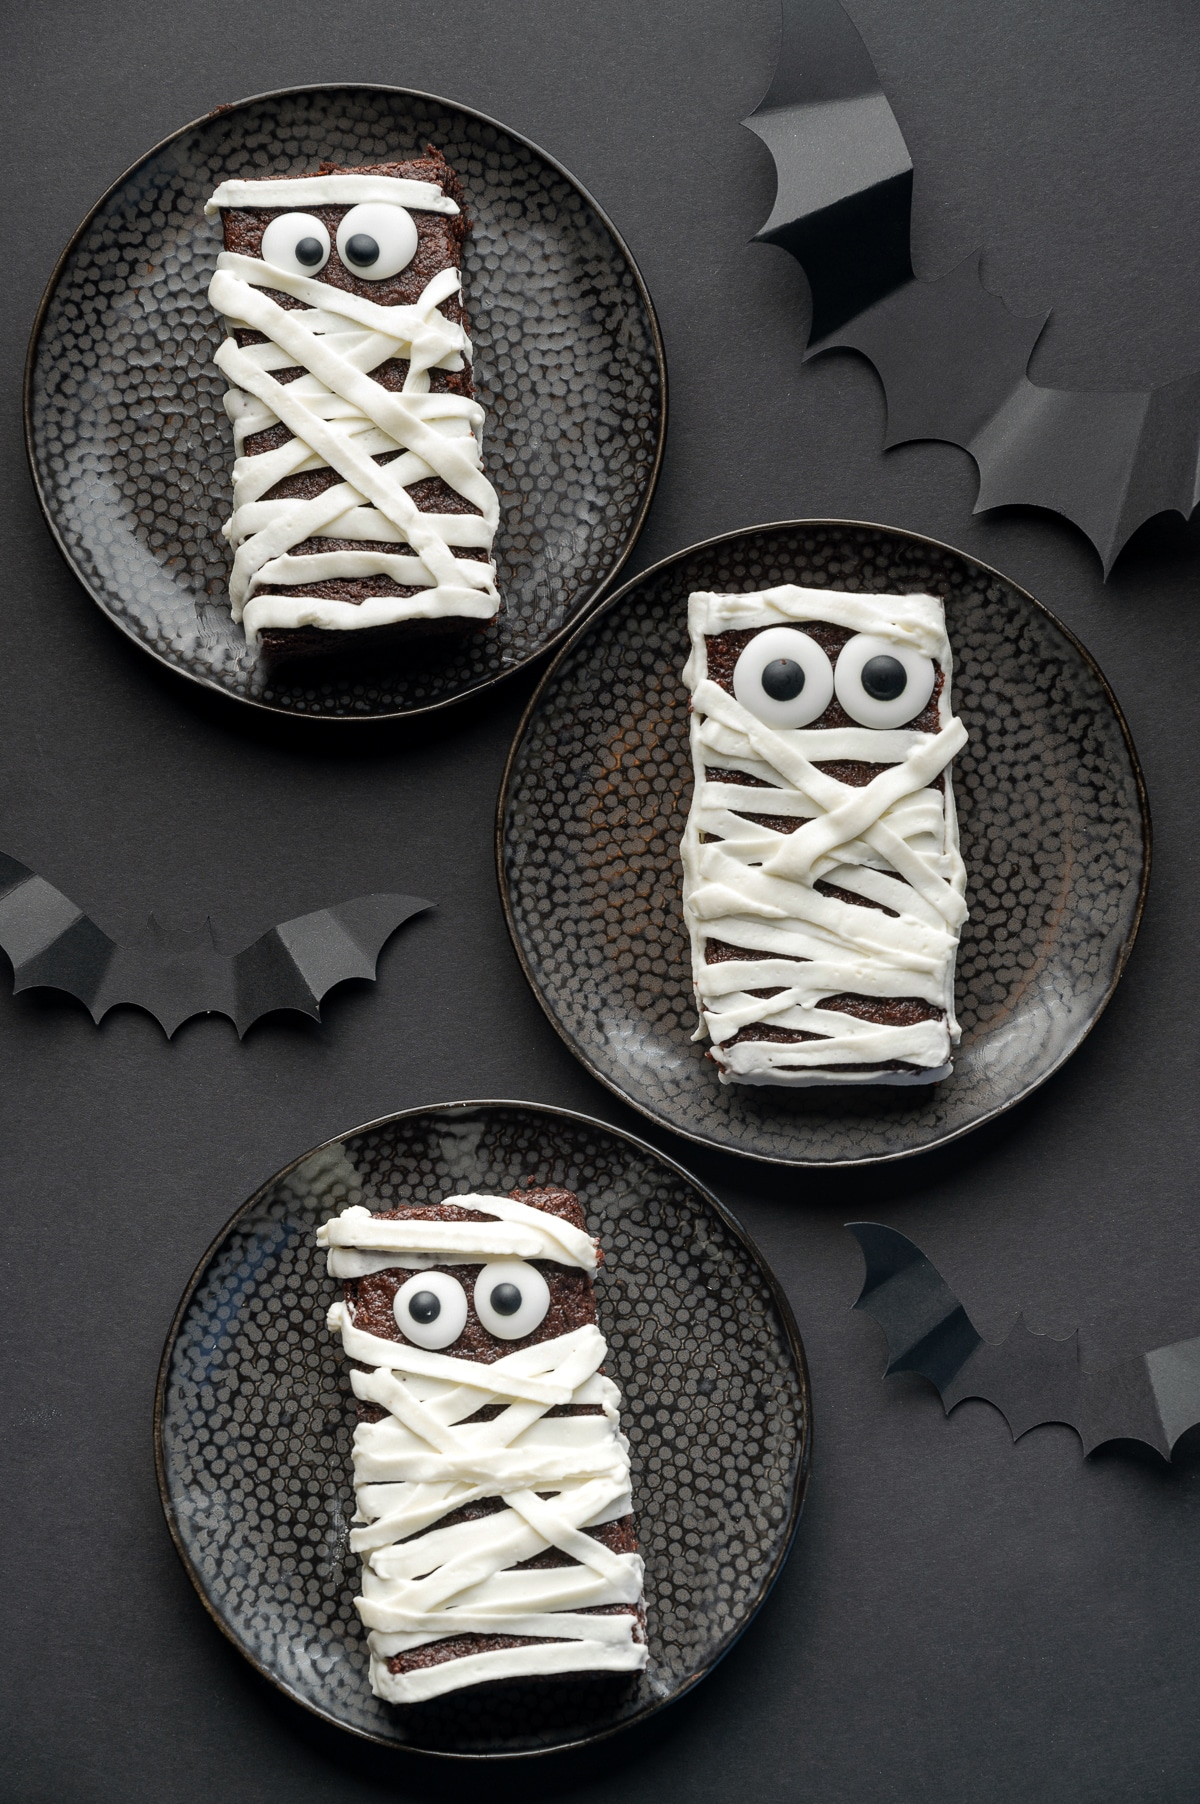 Sugar free brownie with googly eyes and frosting applied in strips to look like bandages on a black background